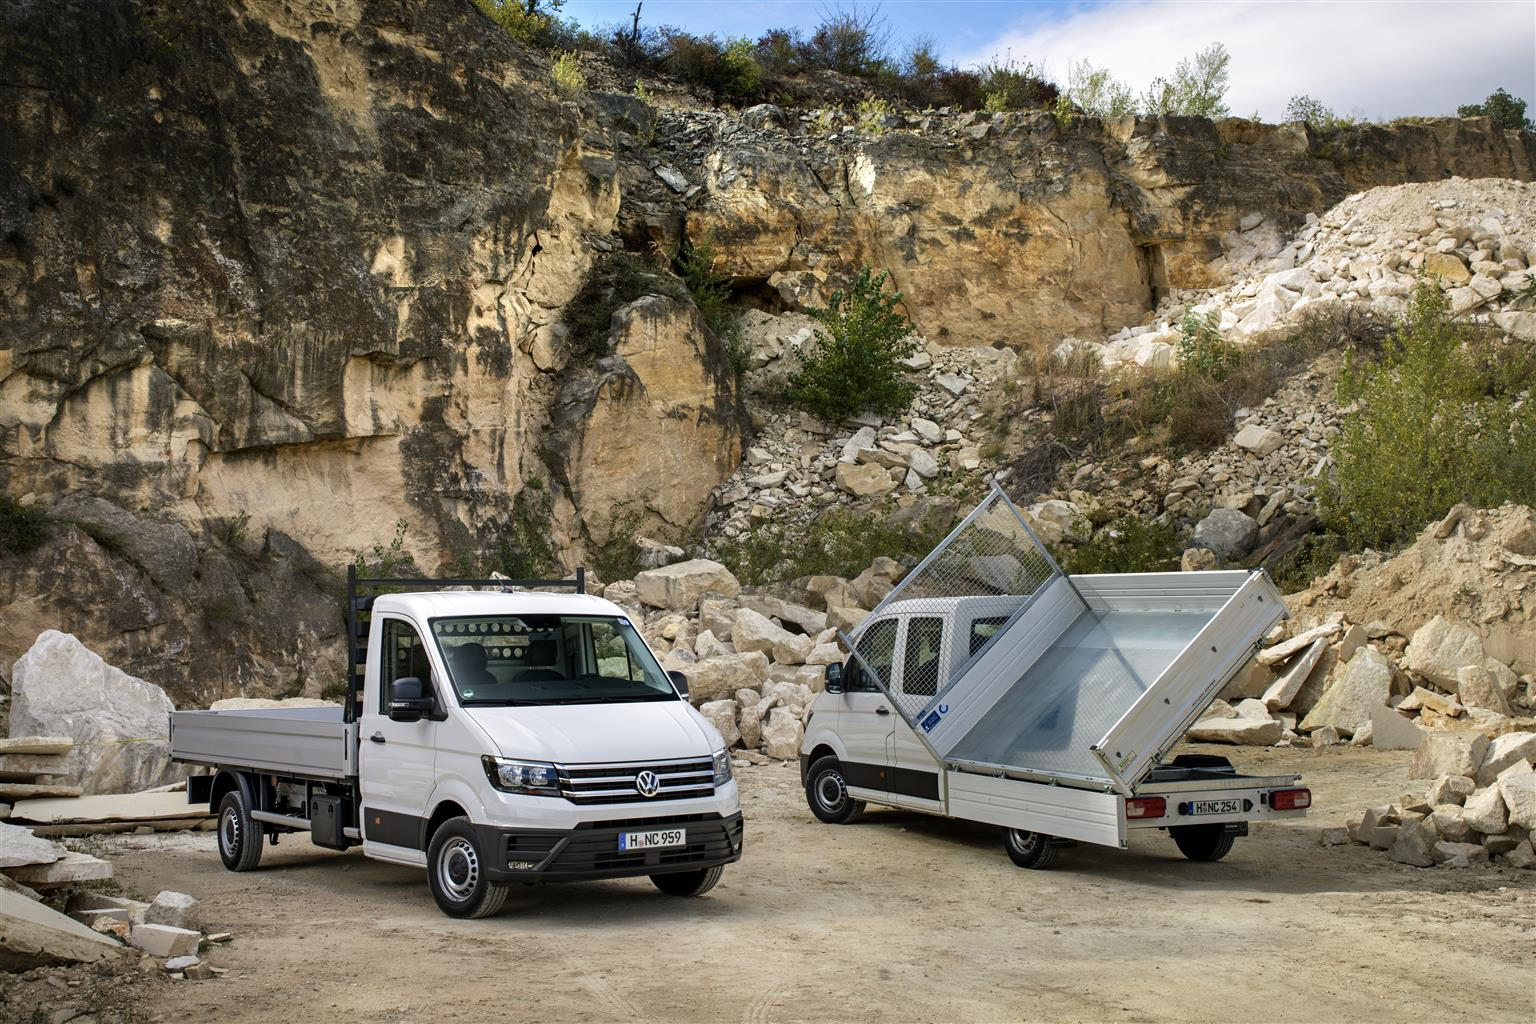 volkswagen crafter my 2018 foto 5 di 10. Black Bedroom Furniture Sets. Home Design Ideas